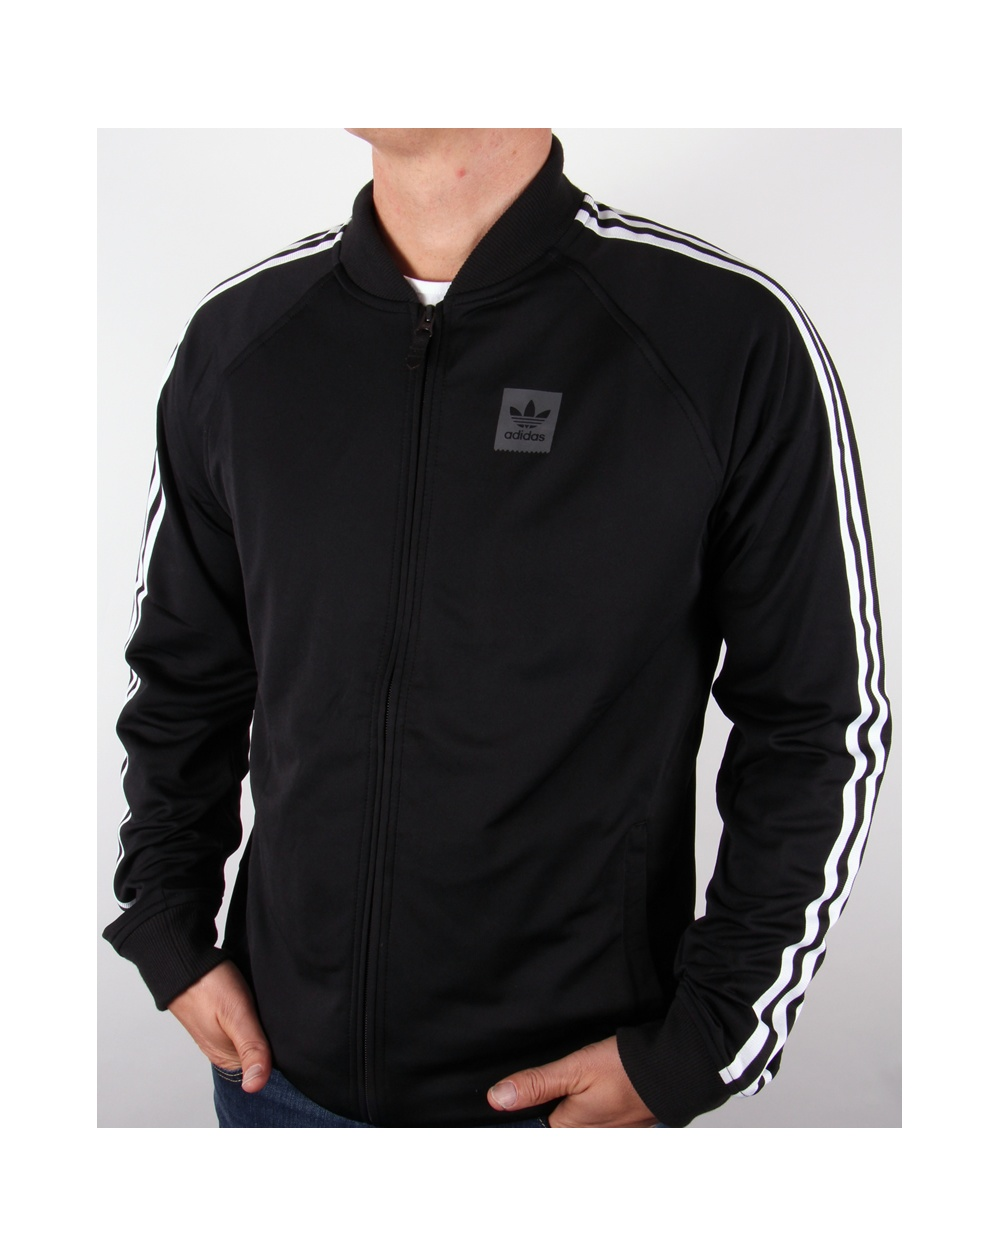 Adidas Originals As Track Jacket Black Adidas Superstar